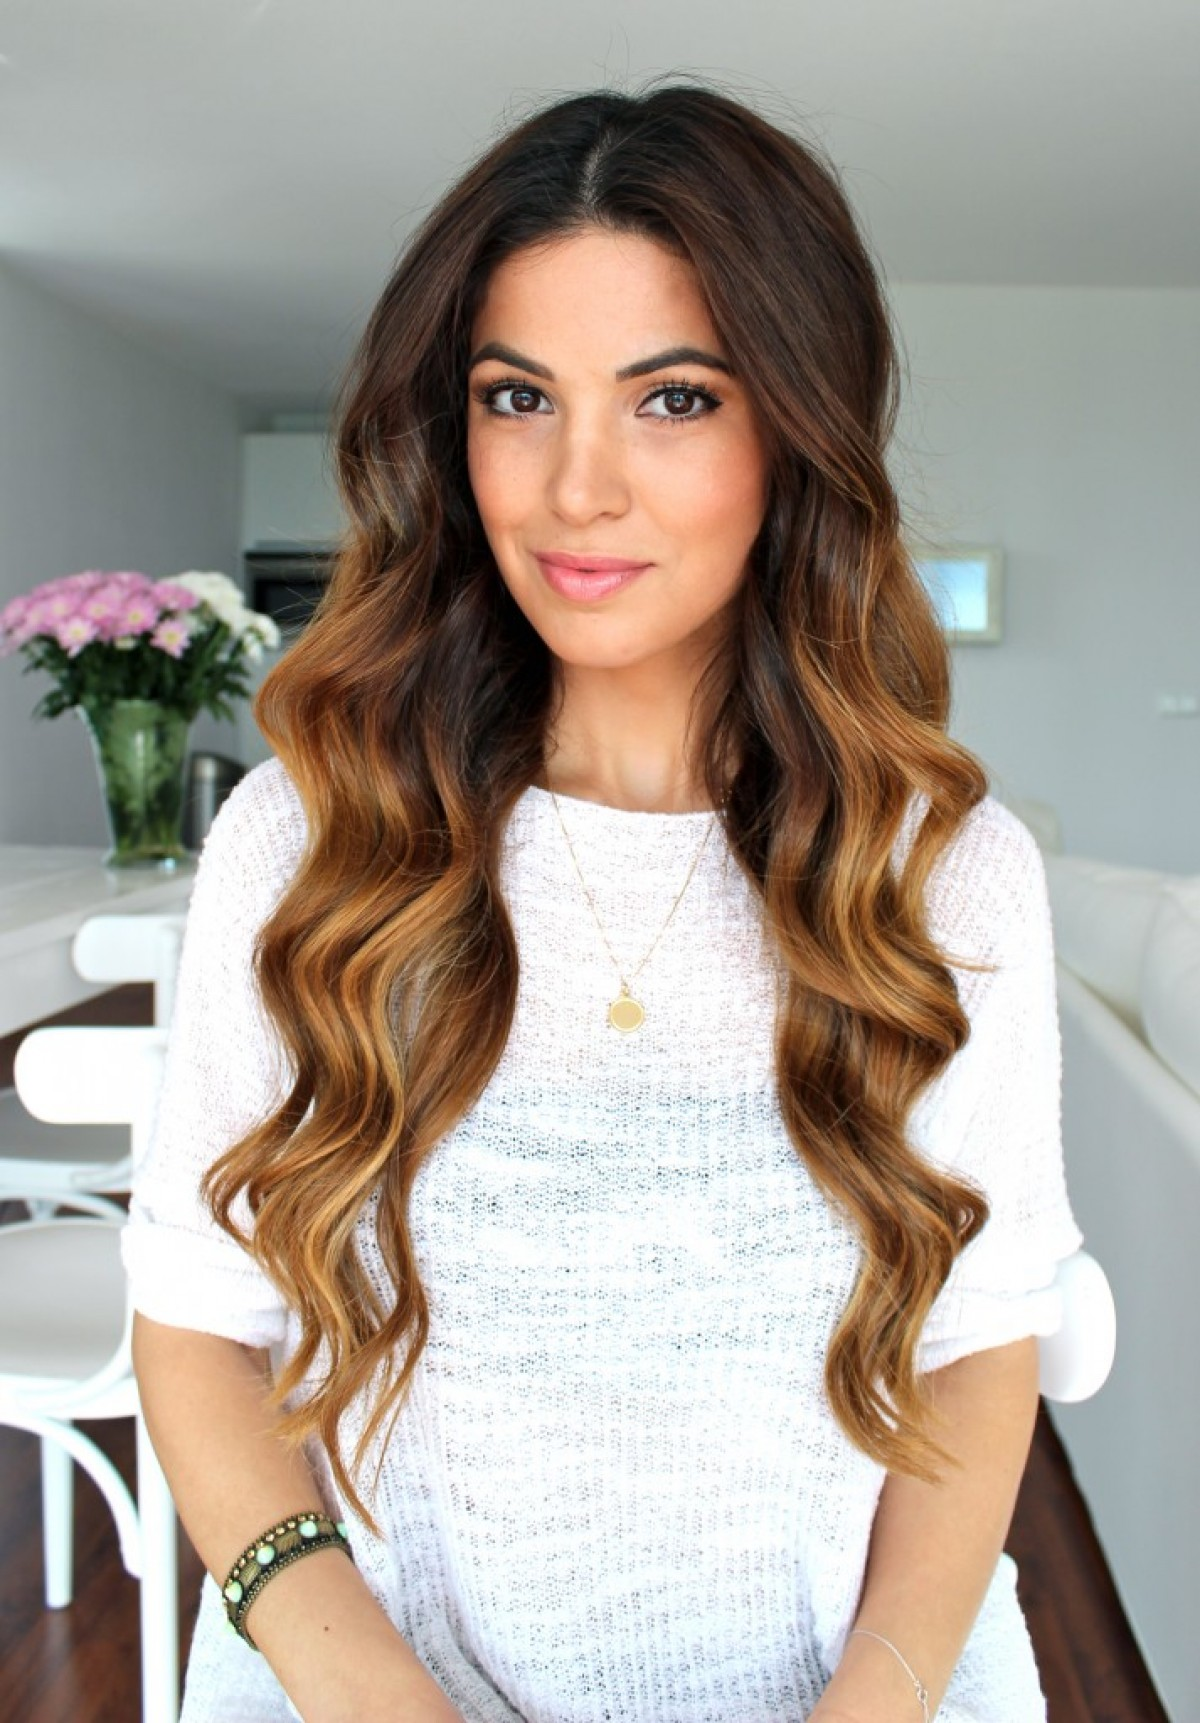 Pleasing Classy To Cute 25 Easy Hairstyles For Long Hair For 2016 Short Hairstyles Gunalazisus